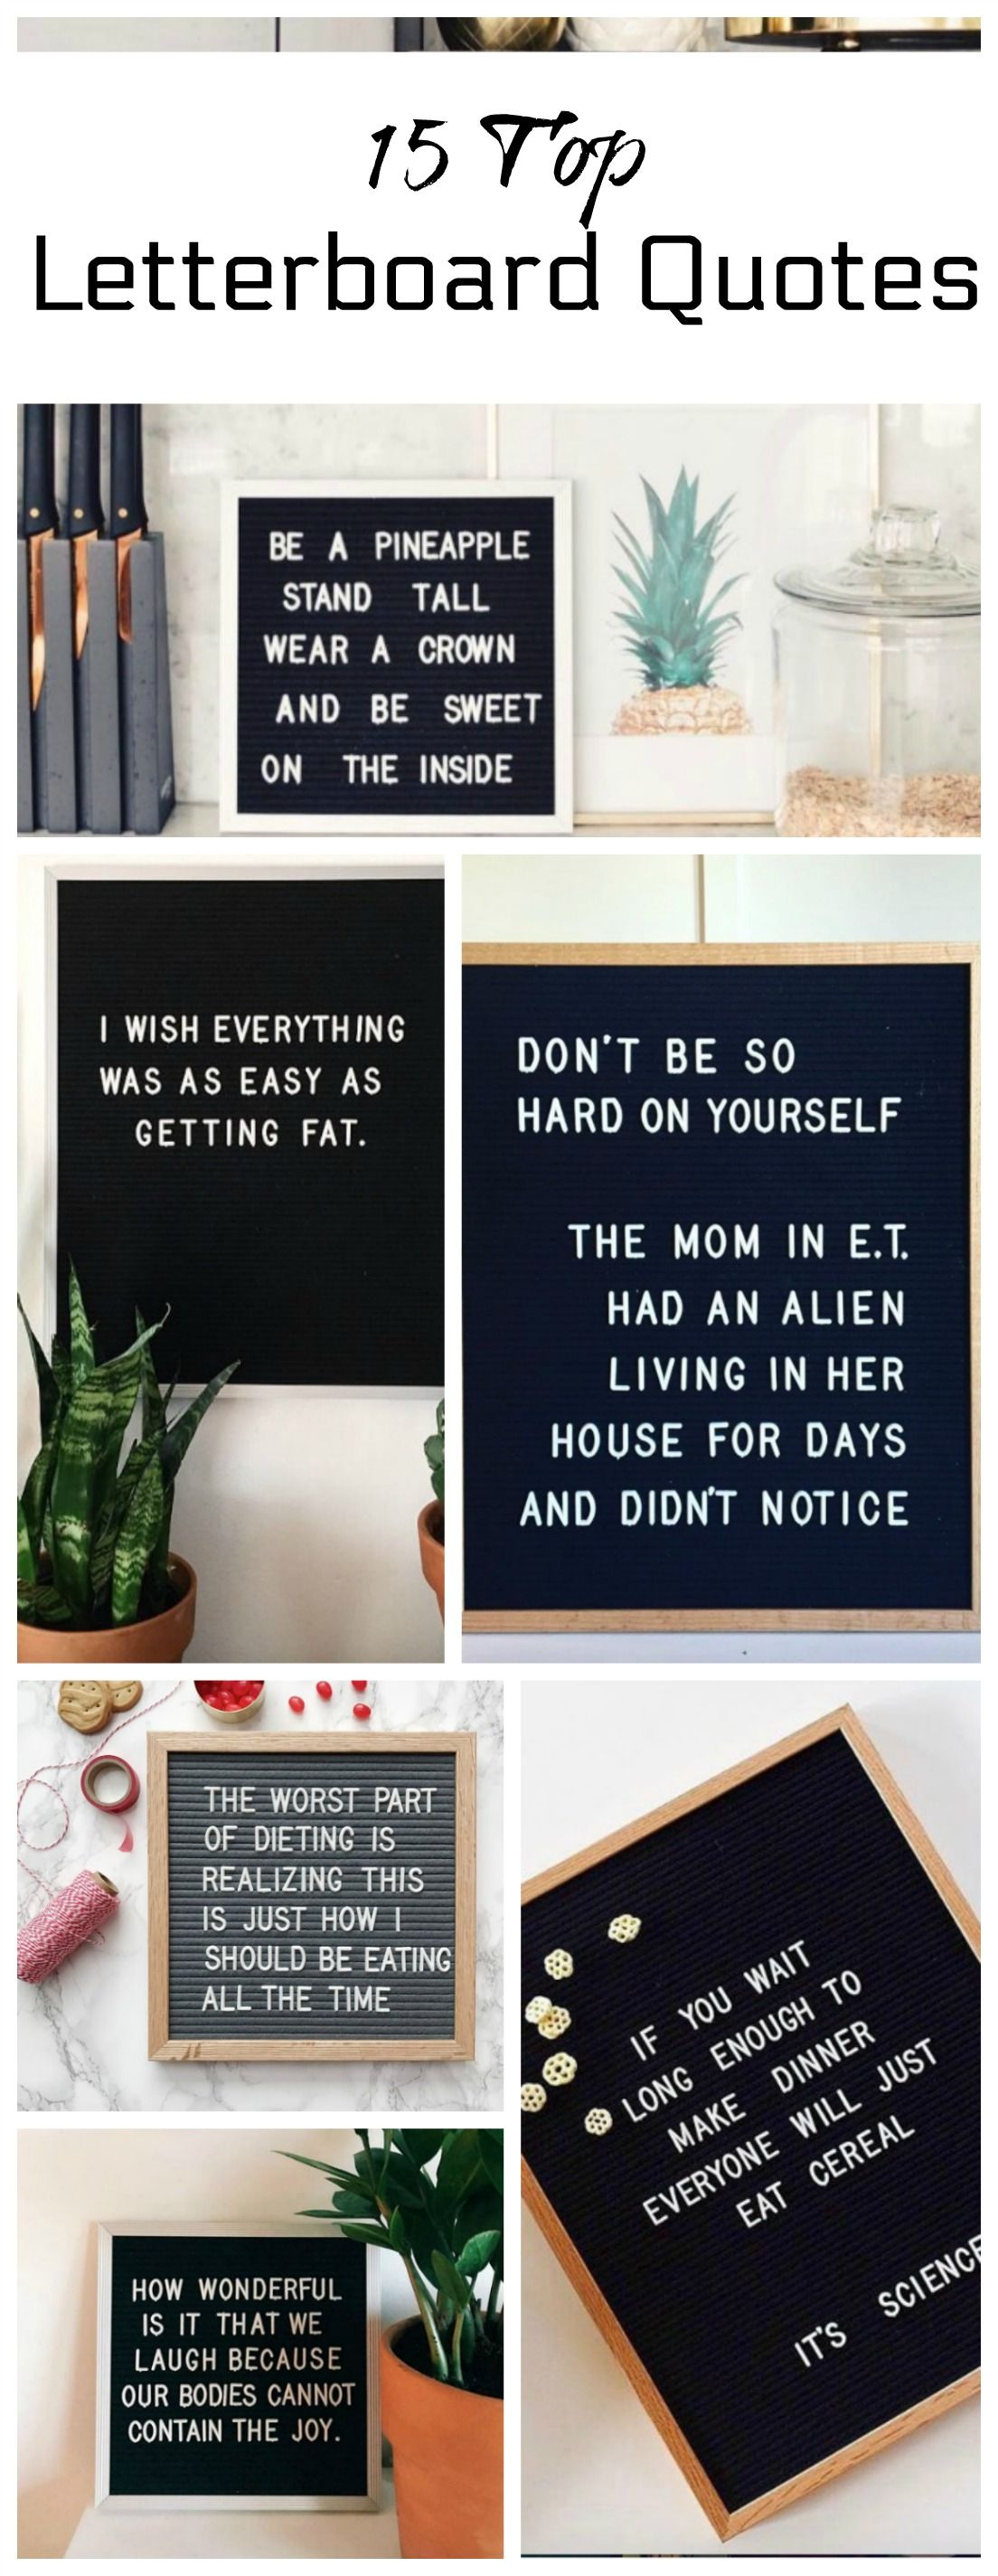 Letterboard Quotes Top 15 Funny and Inspirational